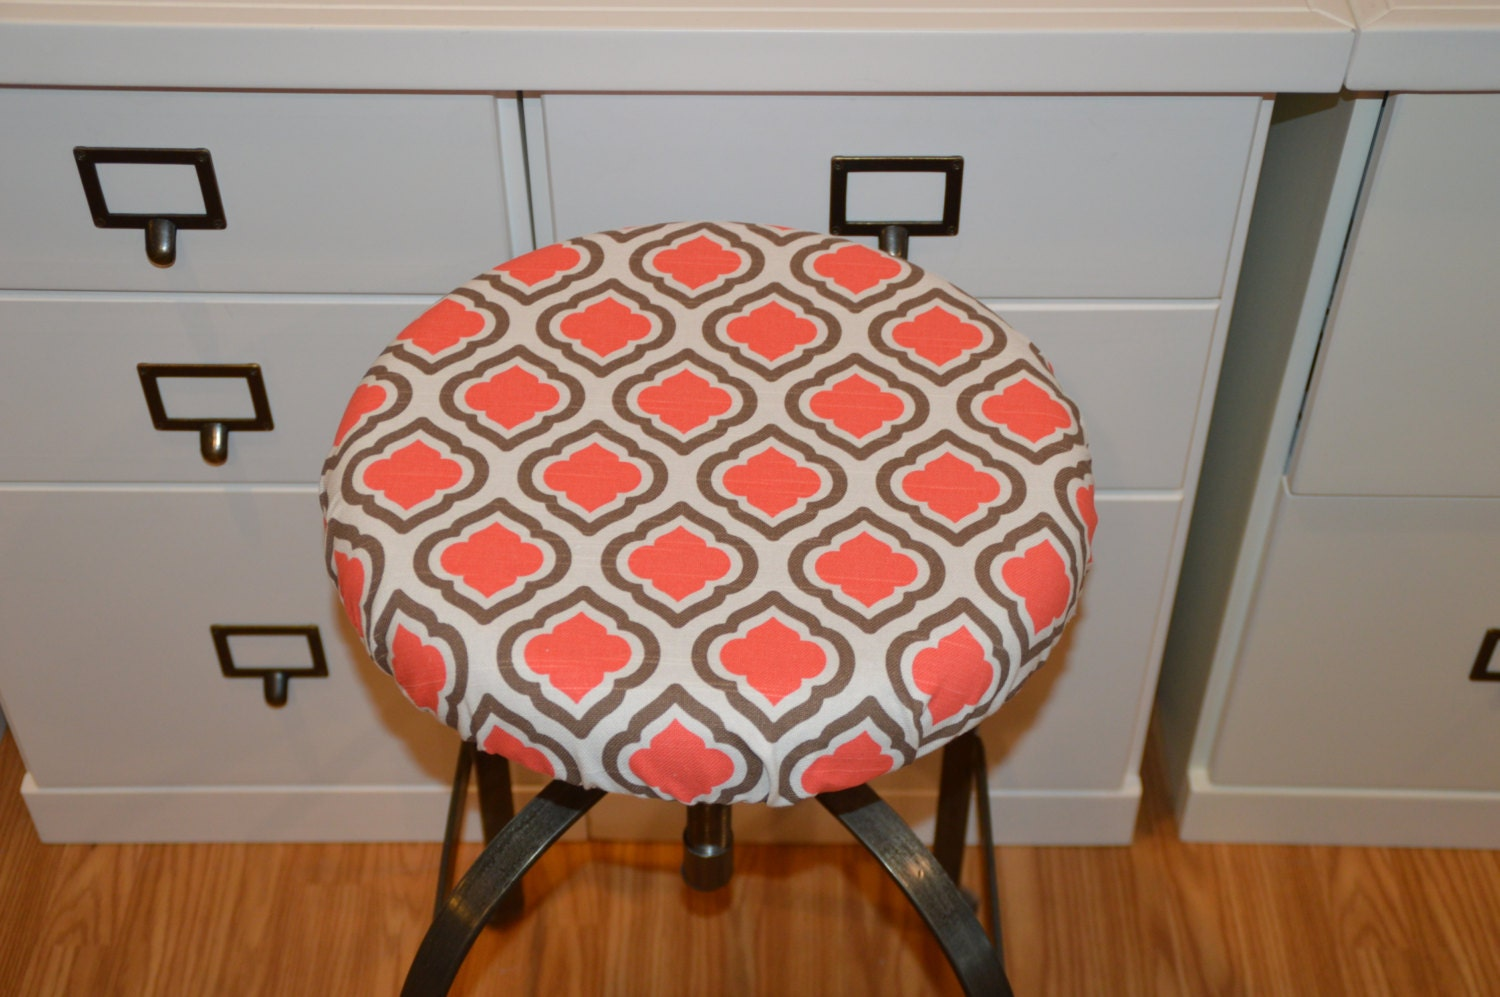 Elasticized round barstool cover seat cushion cover counter stool cover coral with brown zoom